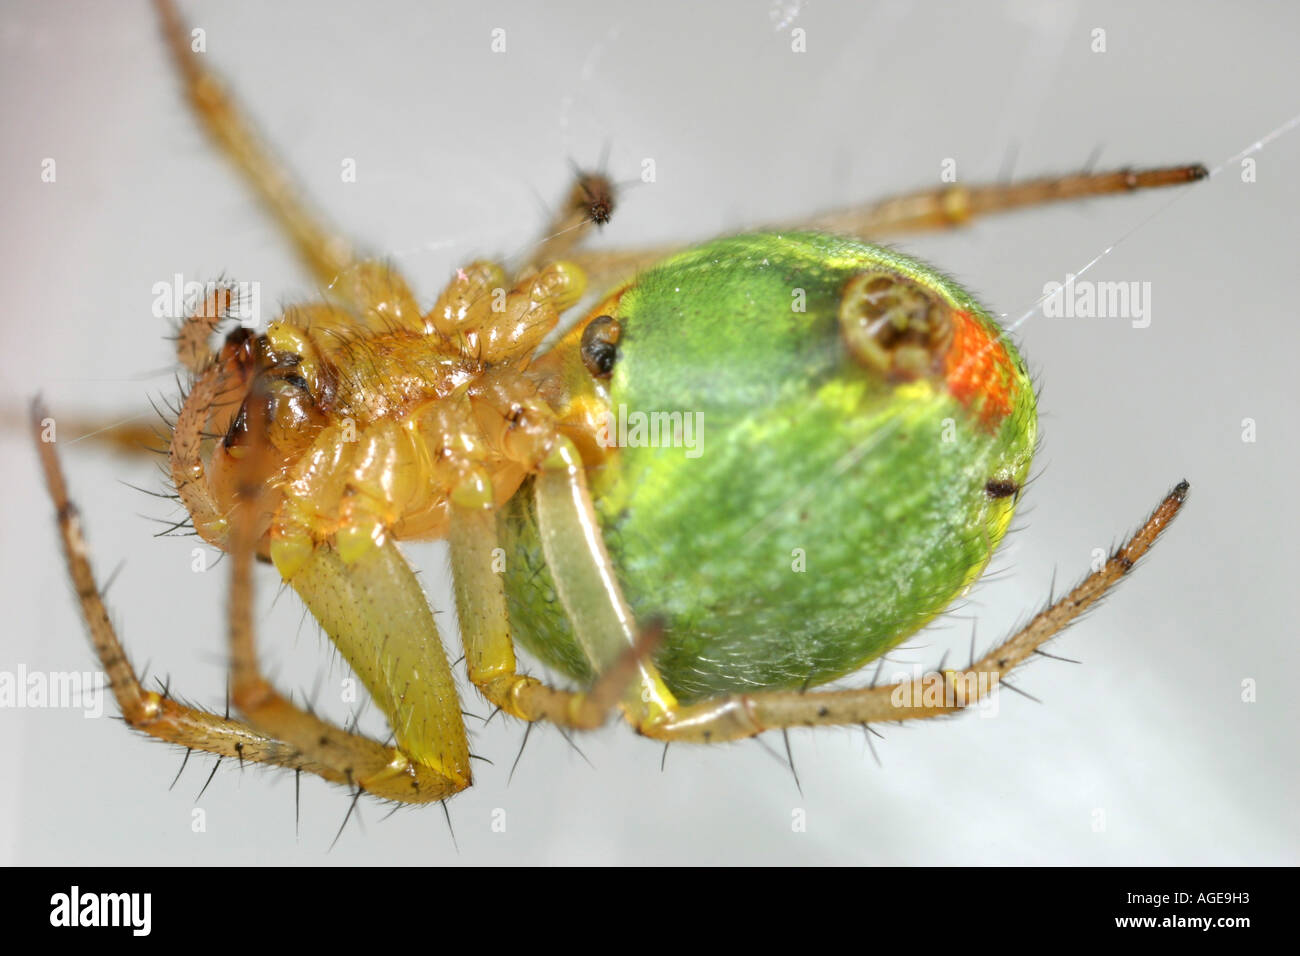 Cucumber Spider, Araniella Cucurbitina, hanging upside down in its webStock Photo